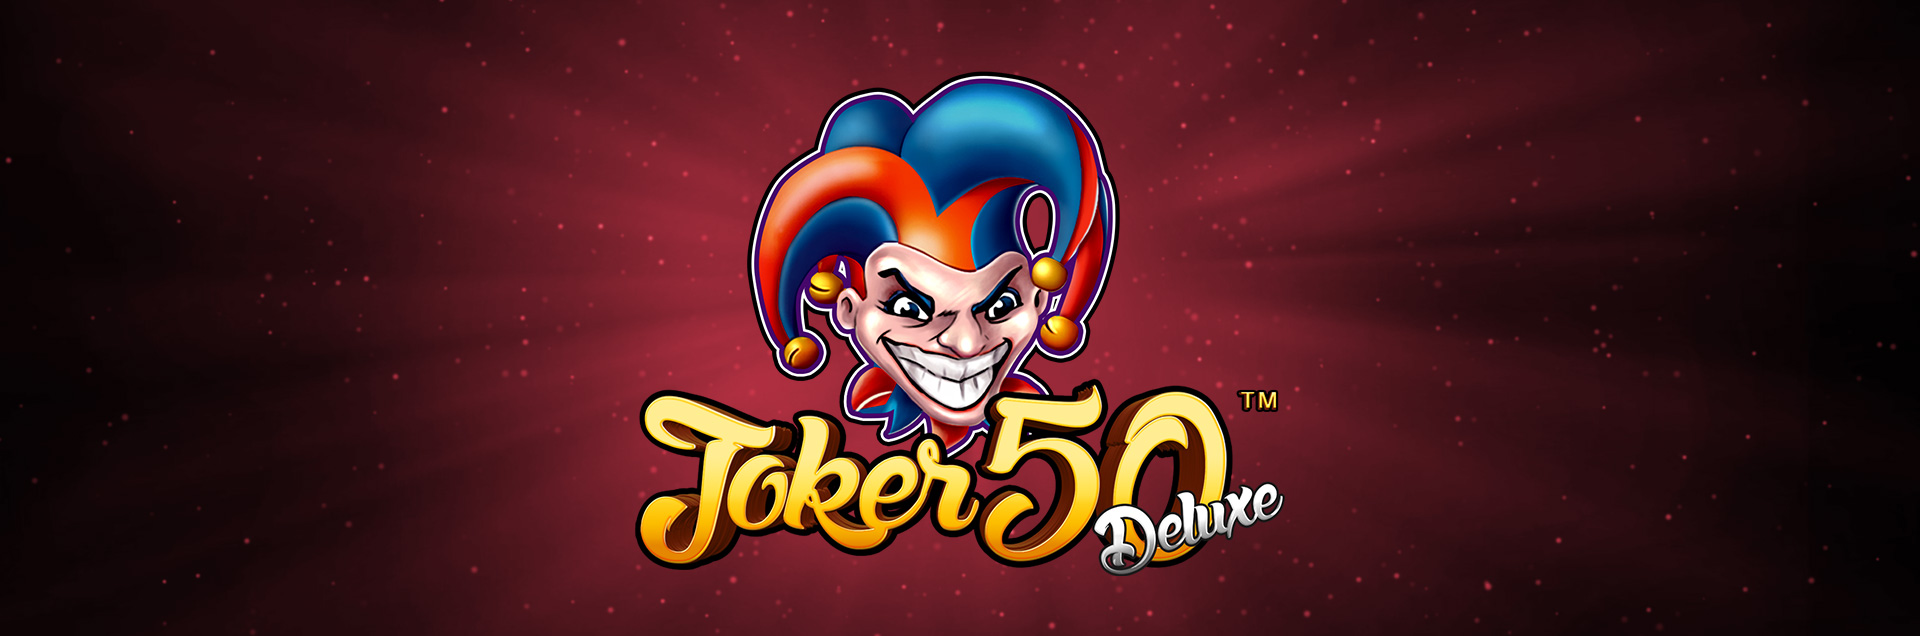 Joker 50 Deluxe header games